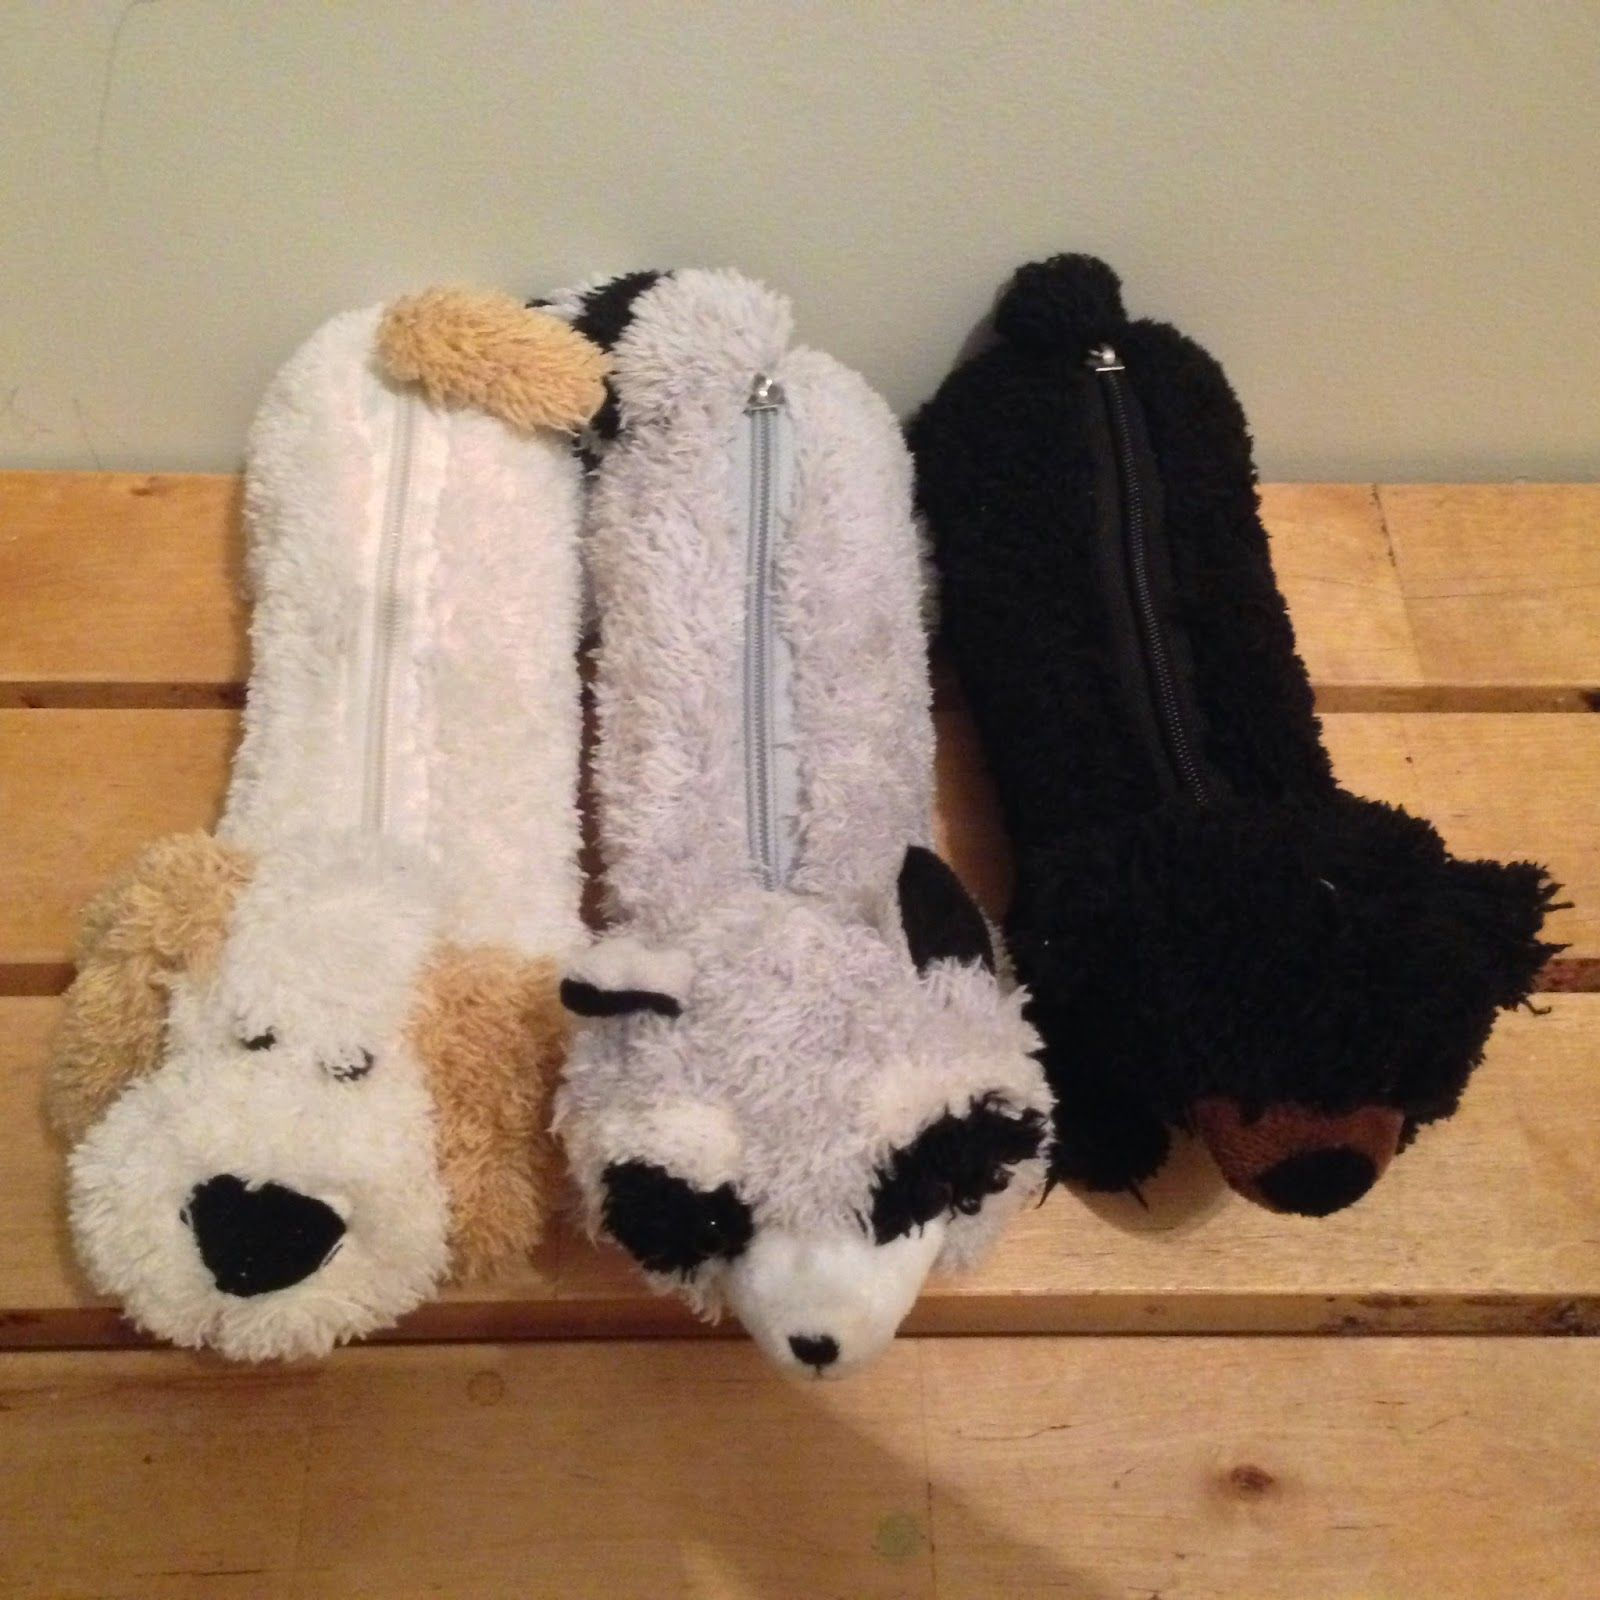 how to make a weighted stuffed animal for sensory processing